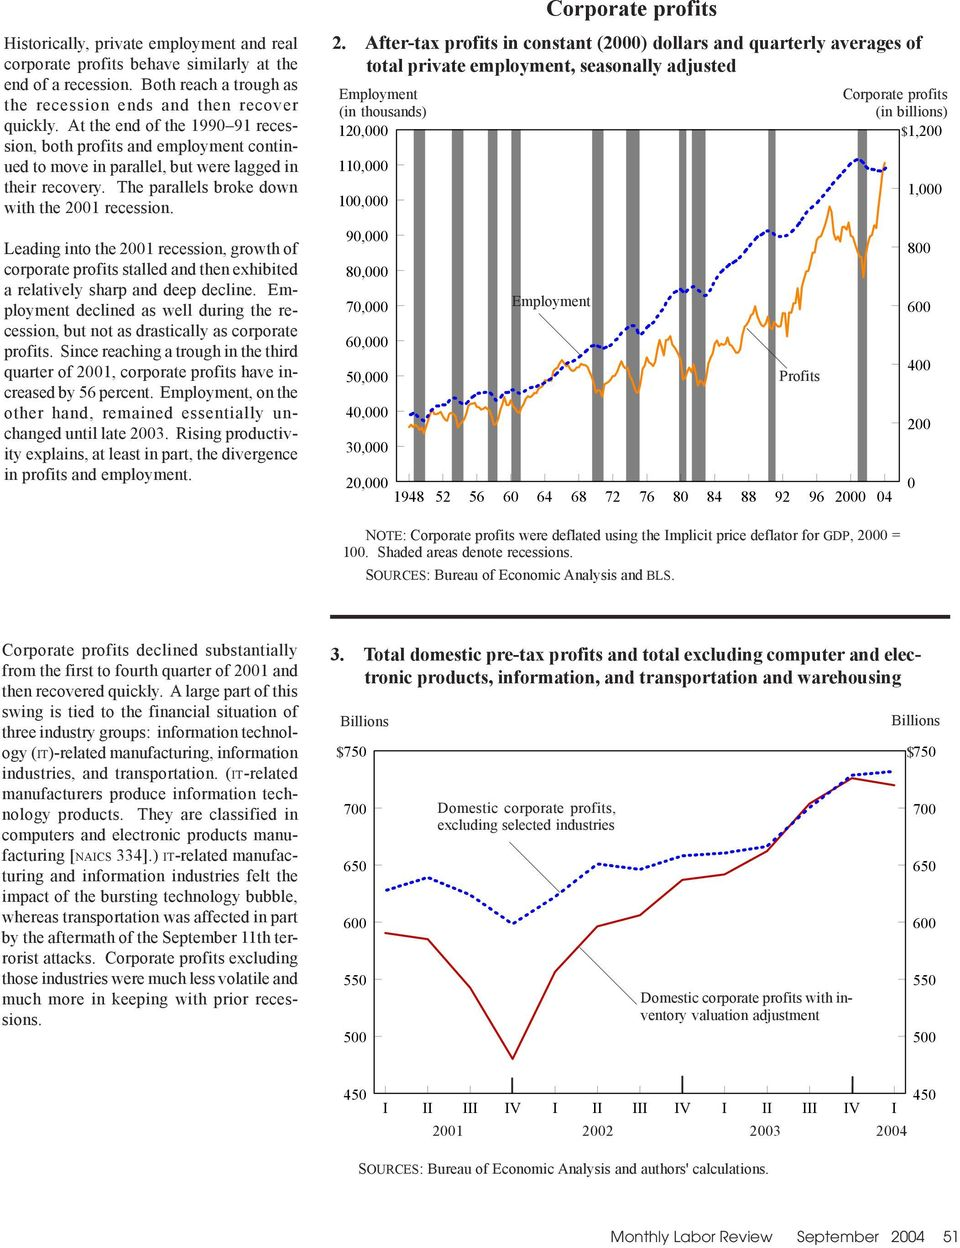 Leading into the 21 recession, growth of corporate profits stalled and then exhibited a relatively sharp and deep decline.